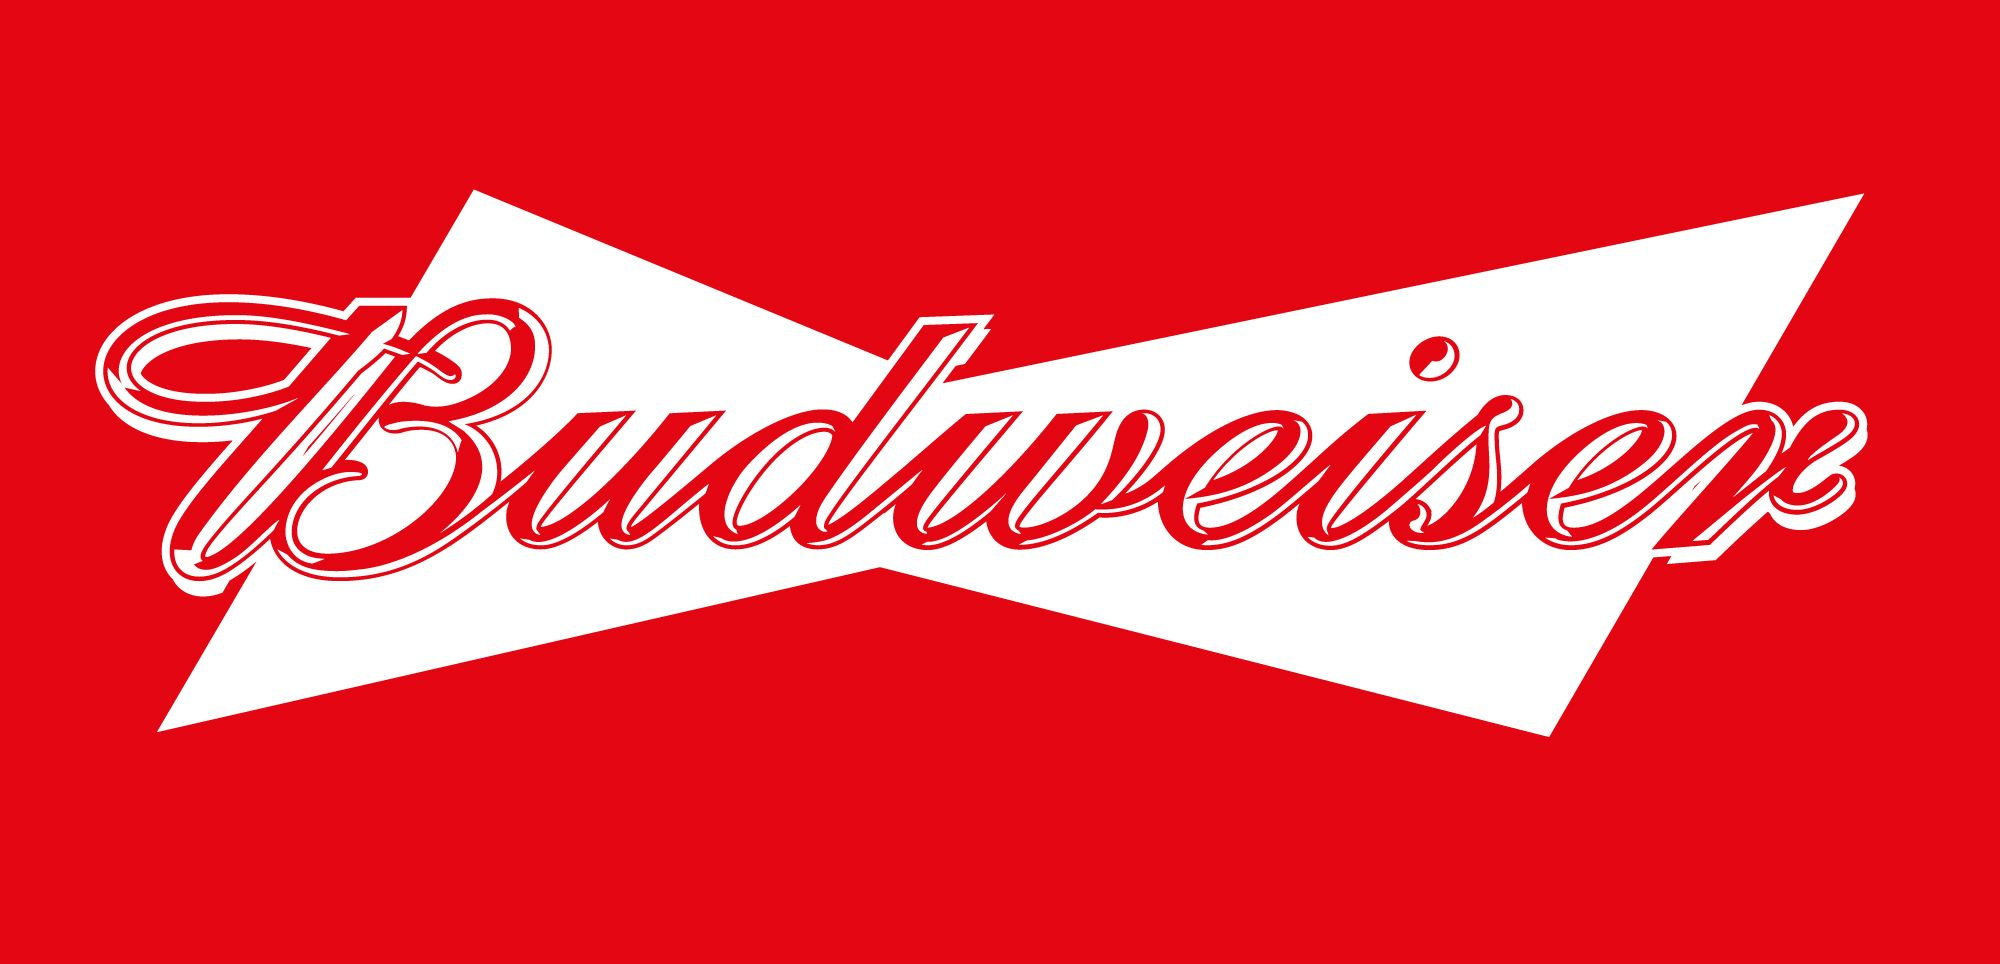 Budweiser Logo - Budweiser Logo, Budweiser Symbol Meaning, History and Evolution